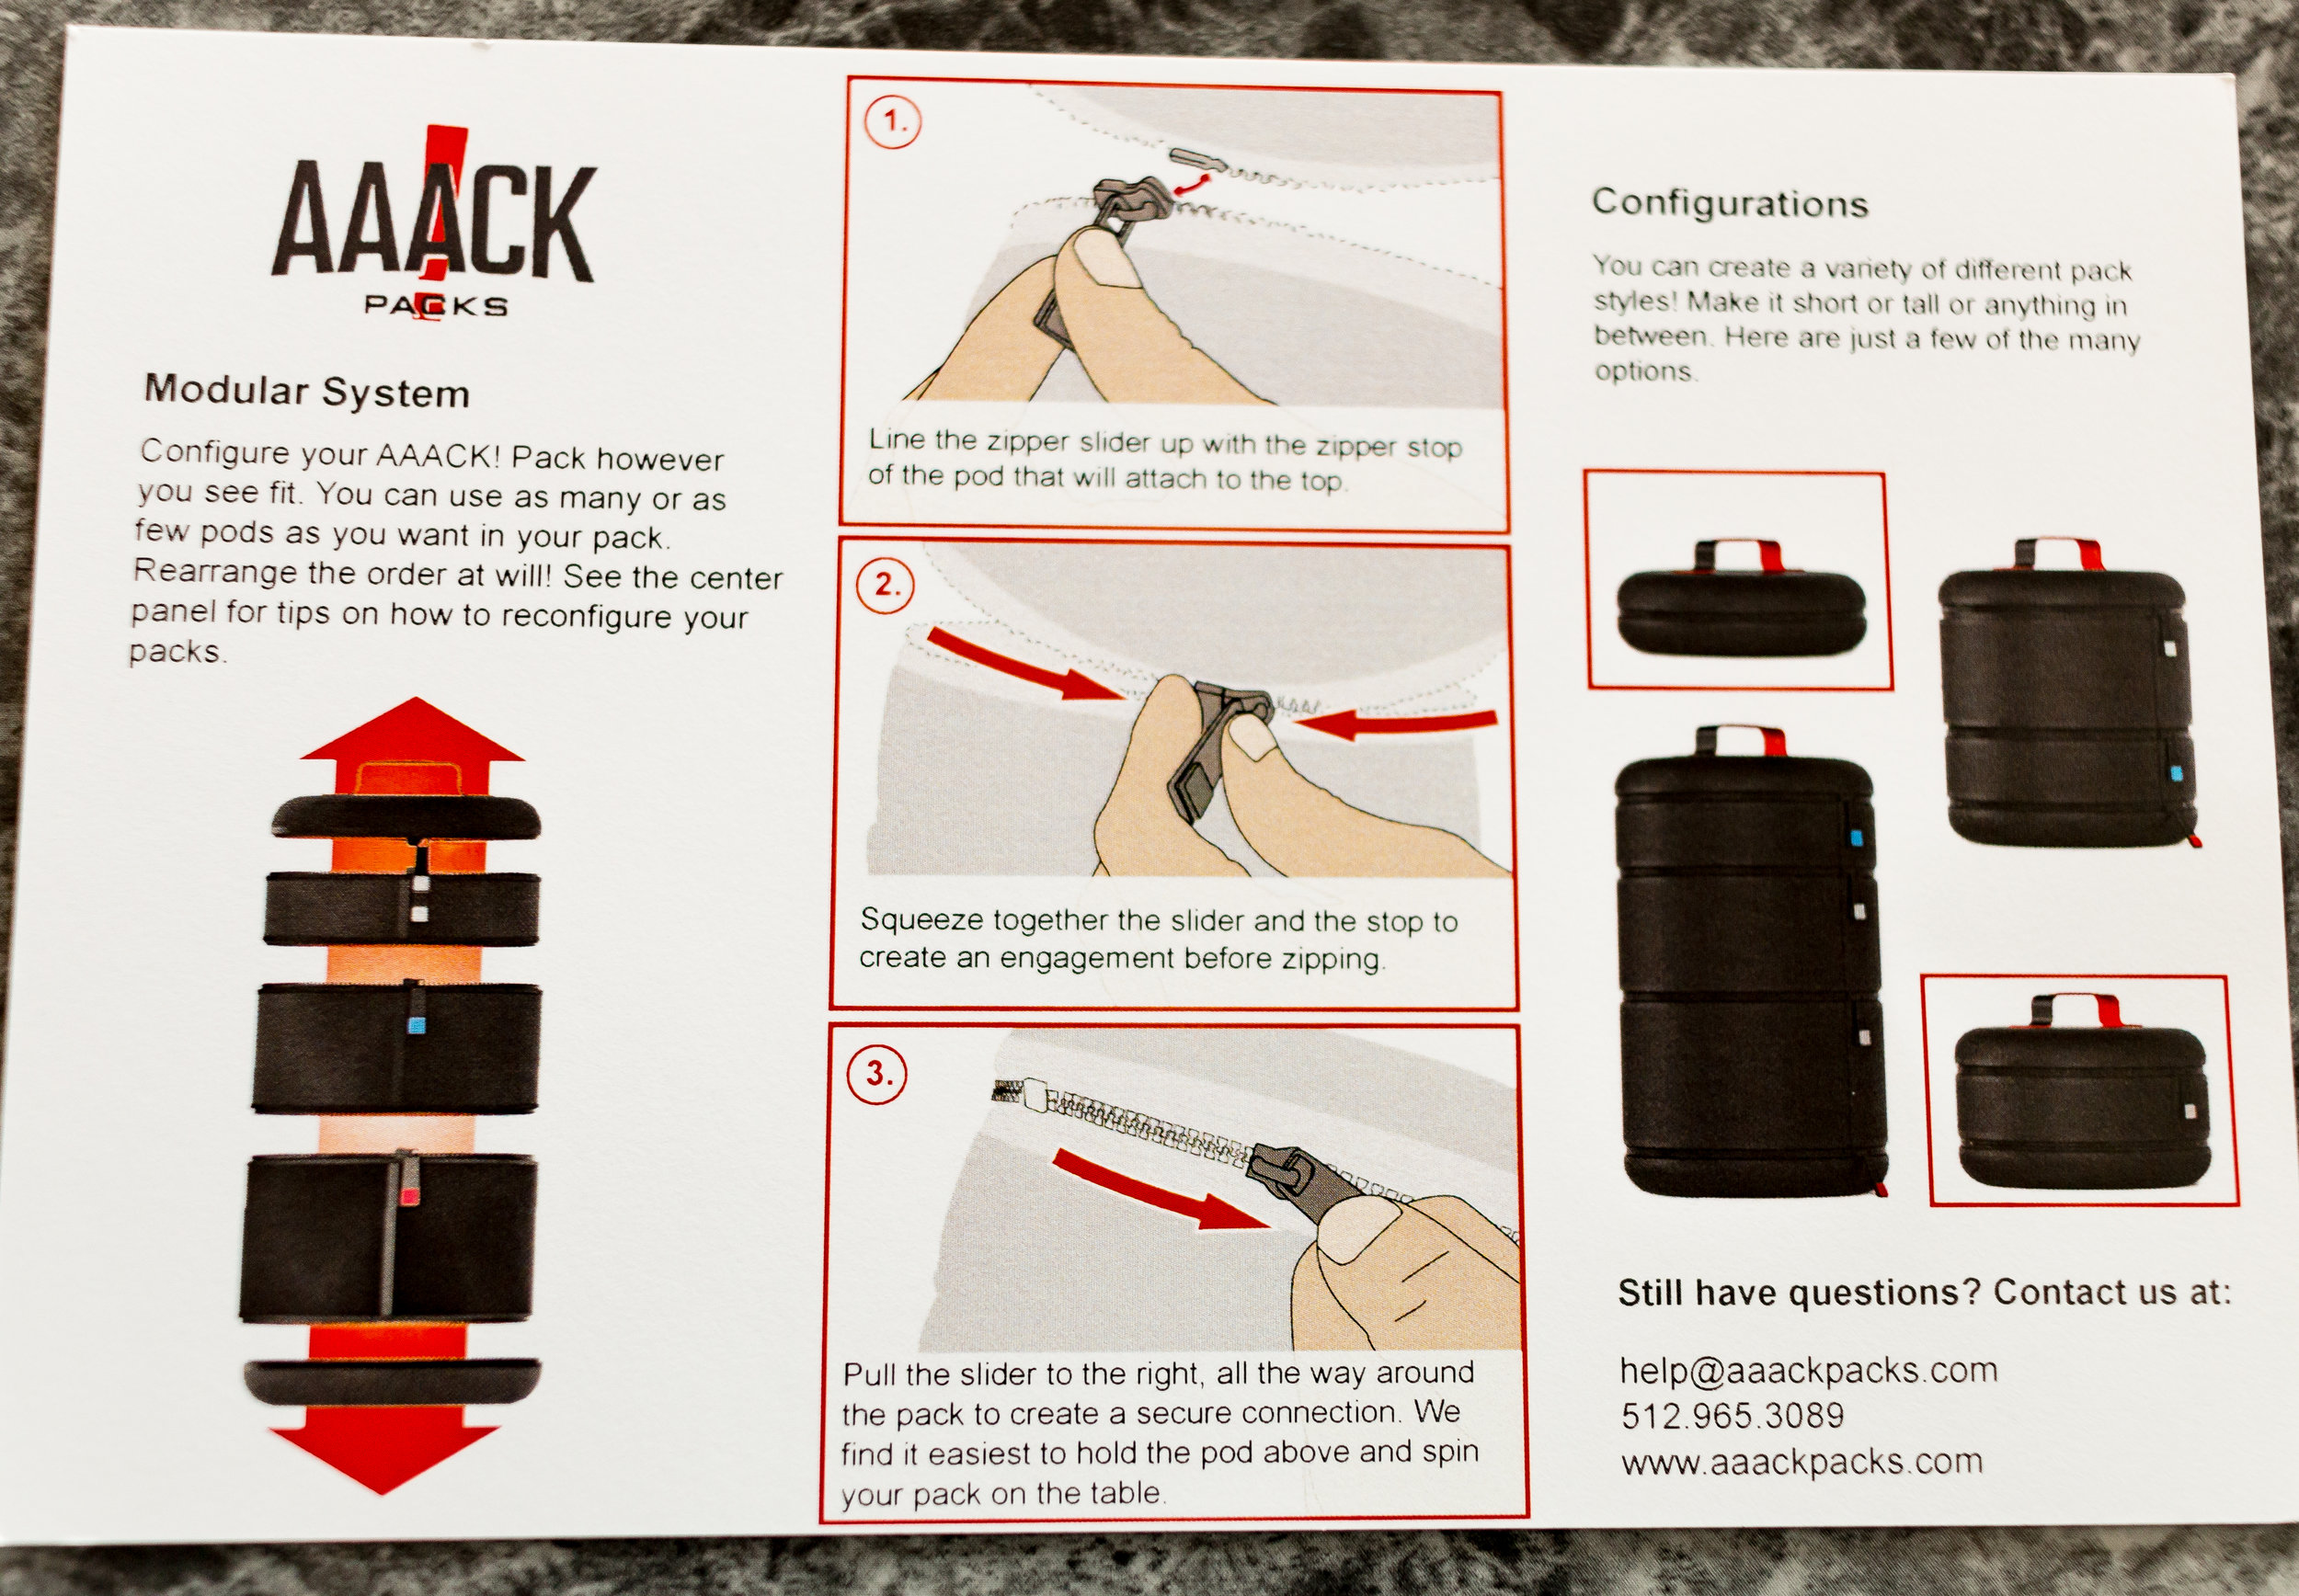 aaack-pack-instructions